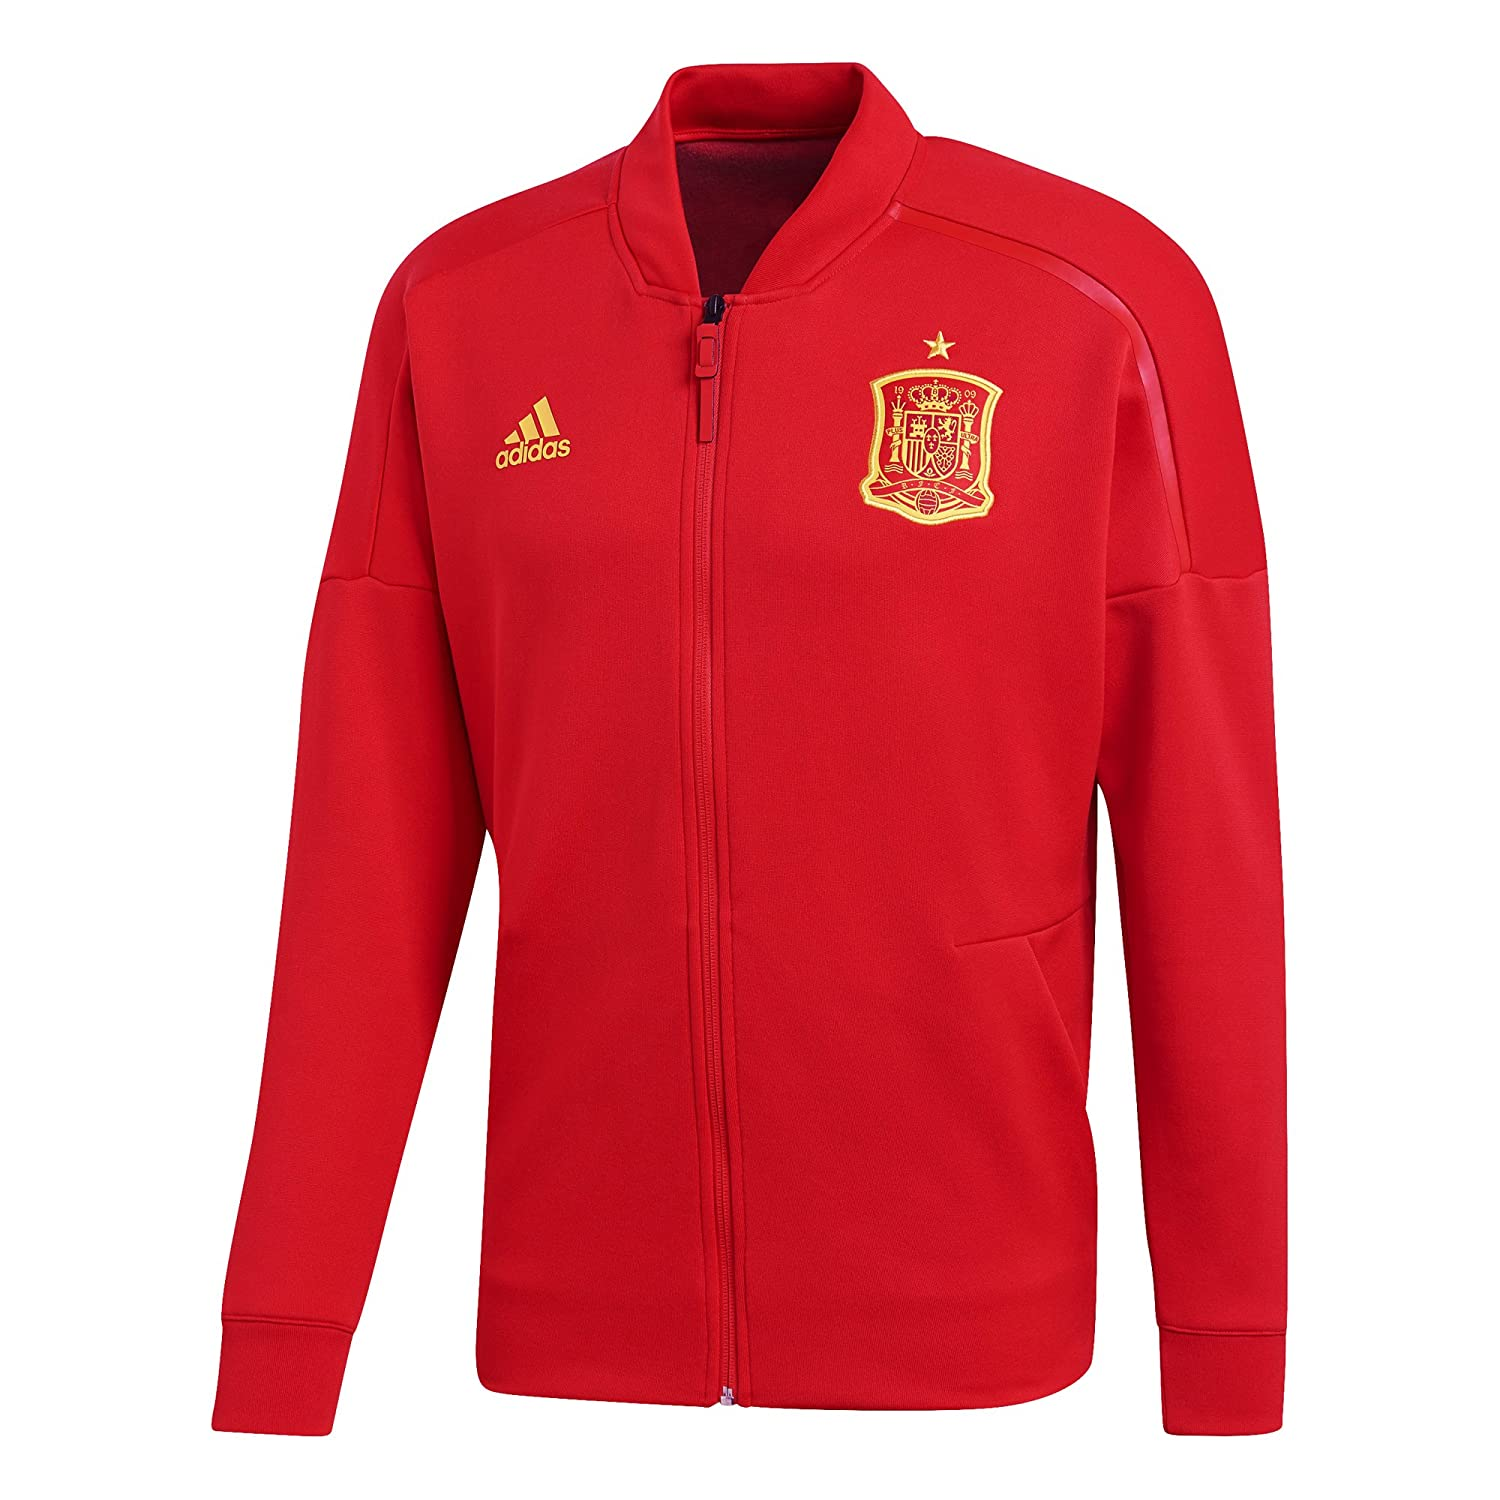 2018-2019 Spain Adidas ZNE Knitted Anthem Jacket (Red) B07BHPV6H4Red XL 44-46\